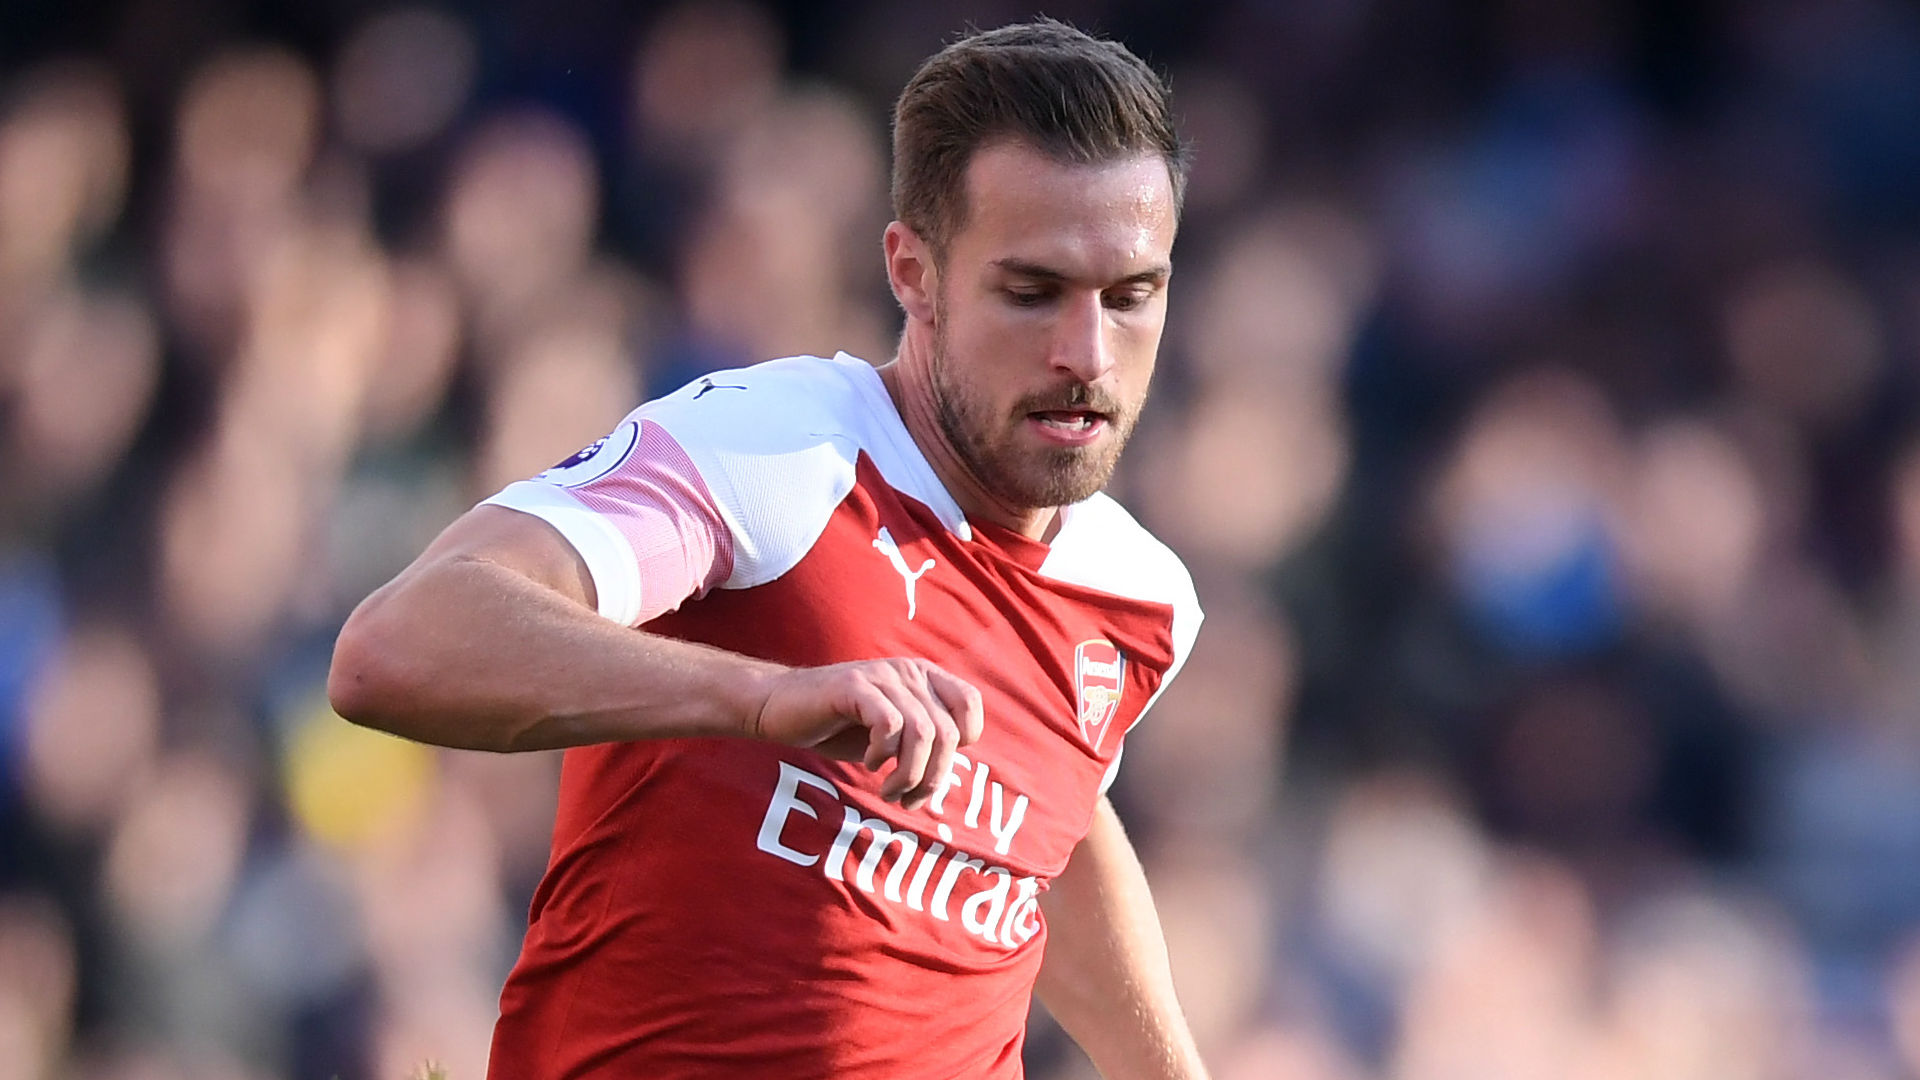 Aaron Ramsey Set For January Transfer Move To Italian Giants